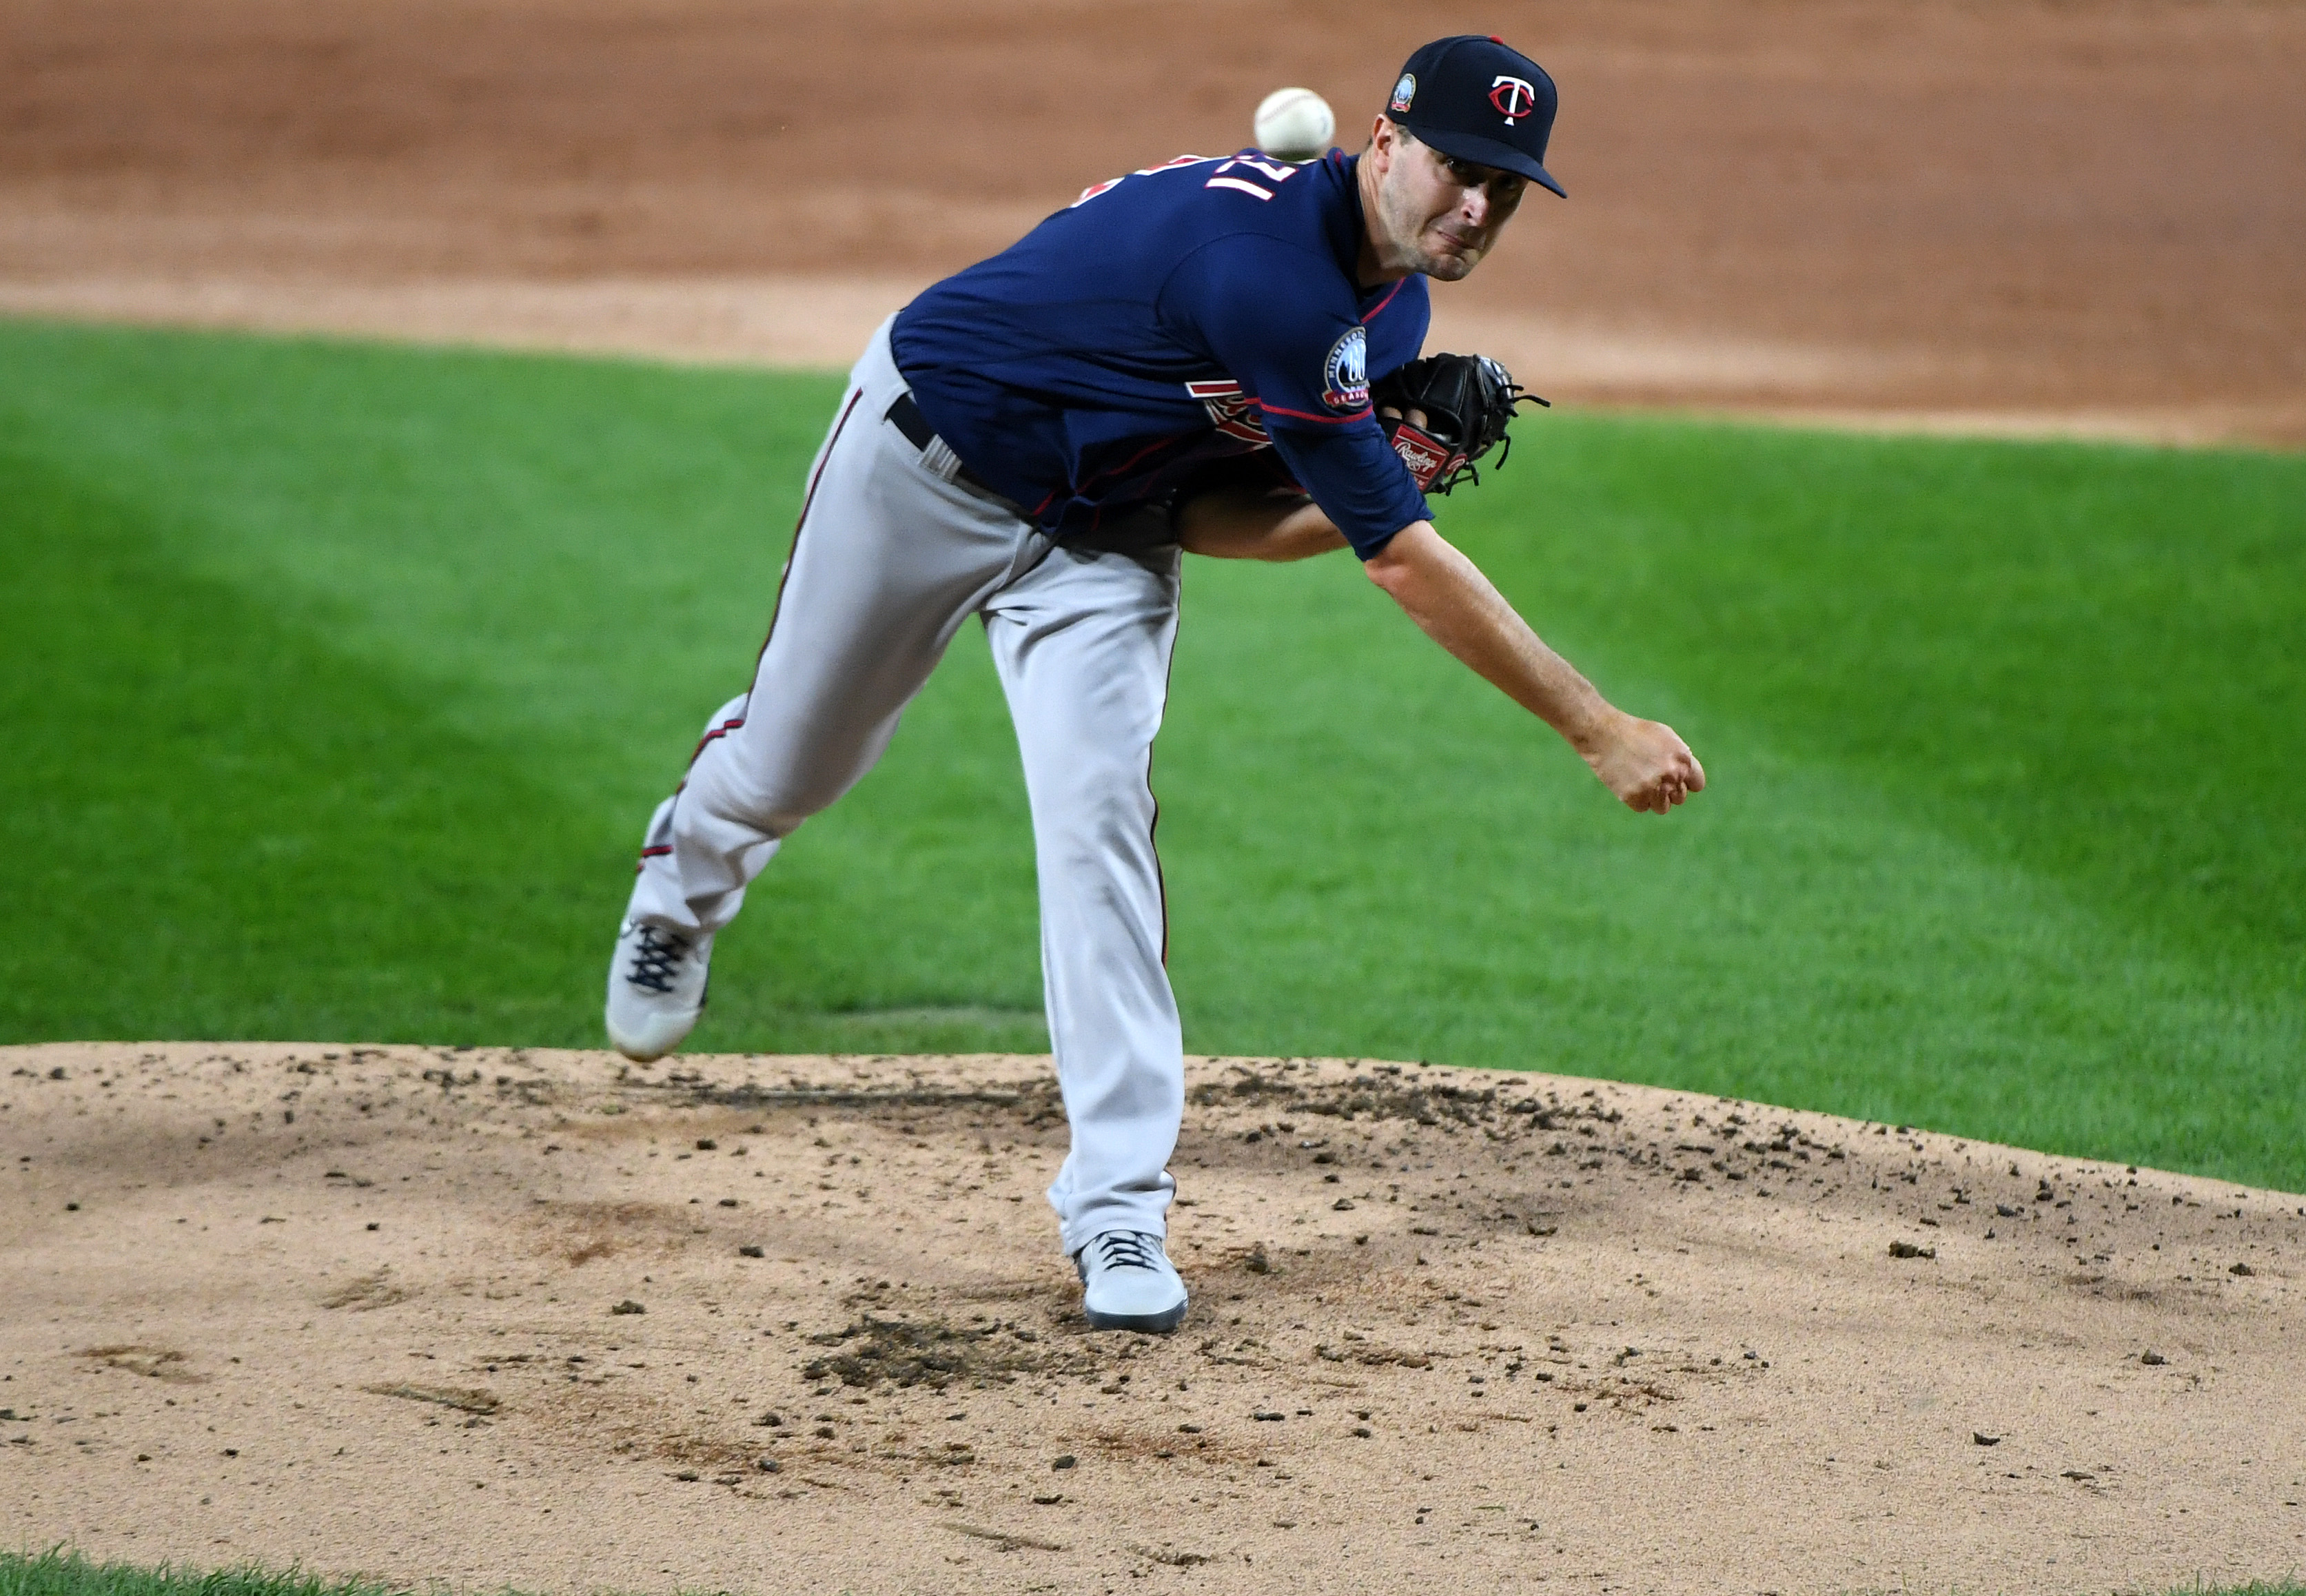 Minnesota Twins starting pitcher Jake Odorizzi (12) throws a pitch against the Chicago White Sox during the first inning at Guaranteed Rate Field.